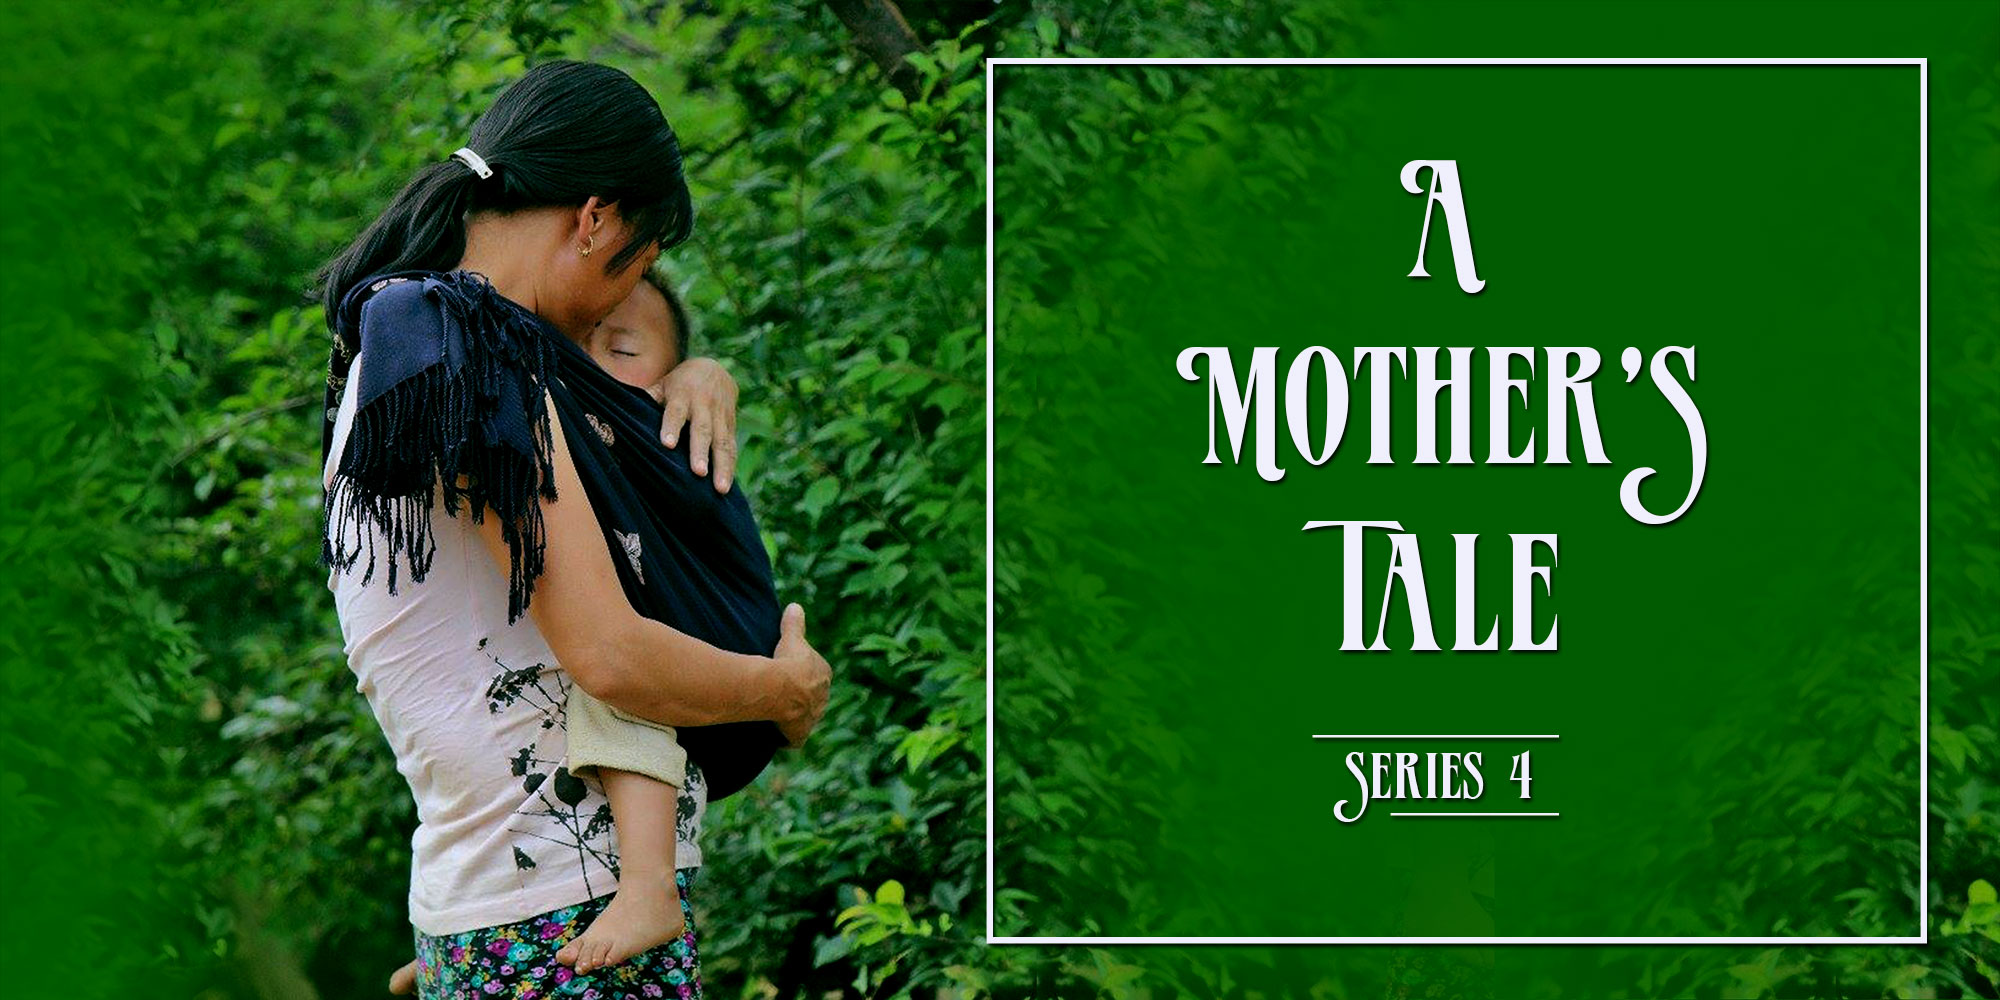 All she wanted was to remember: a mothers tale 4